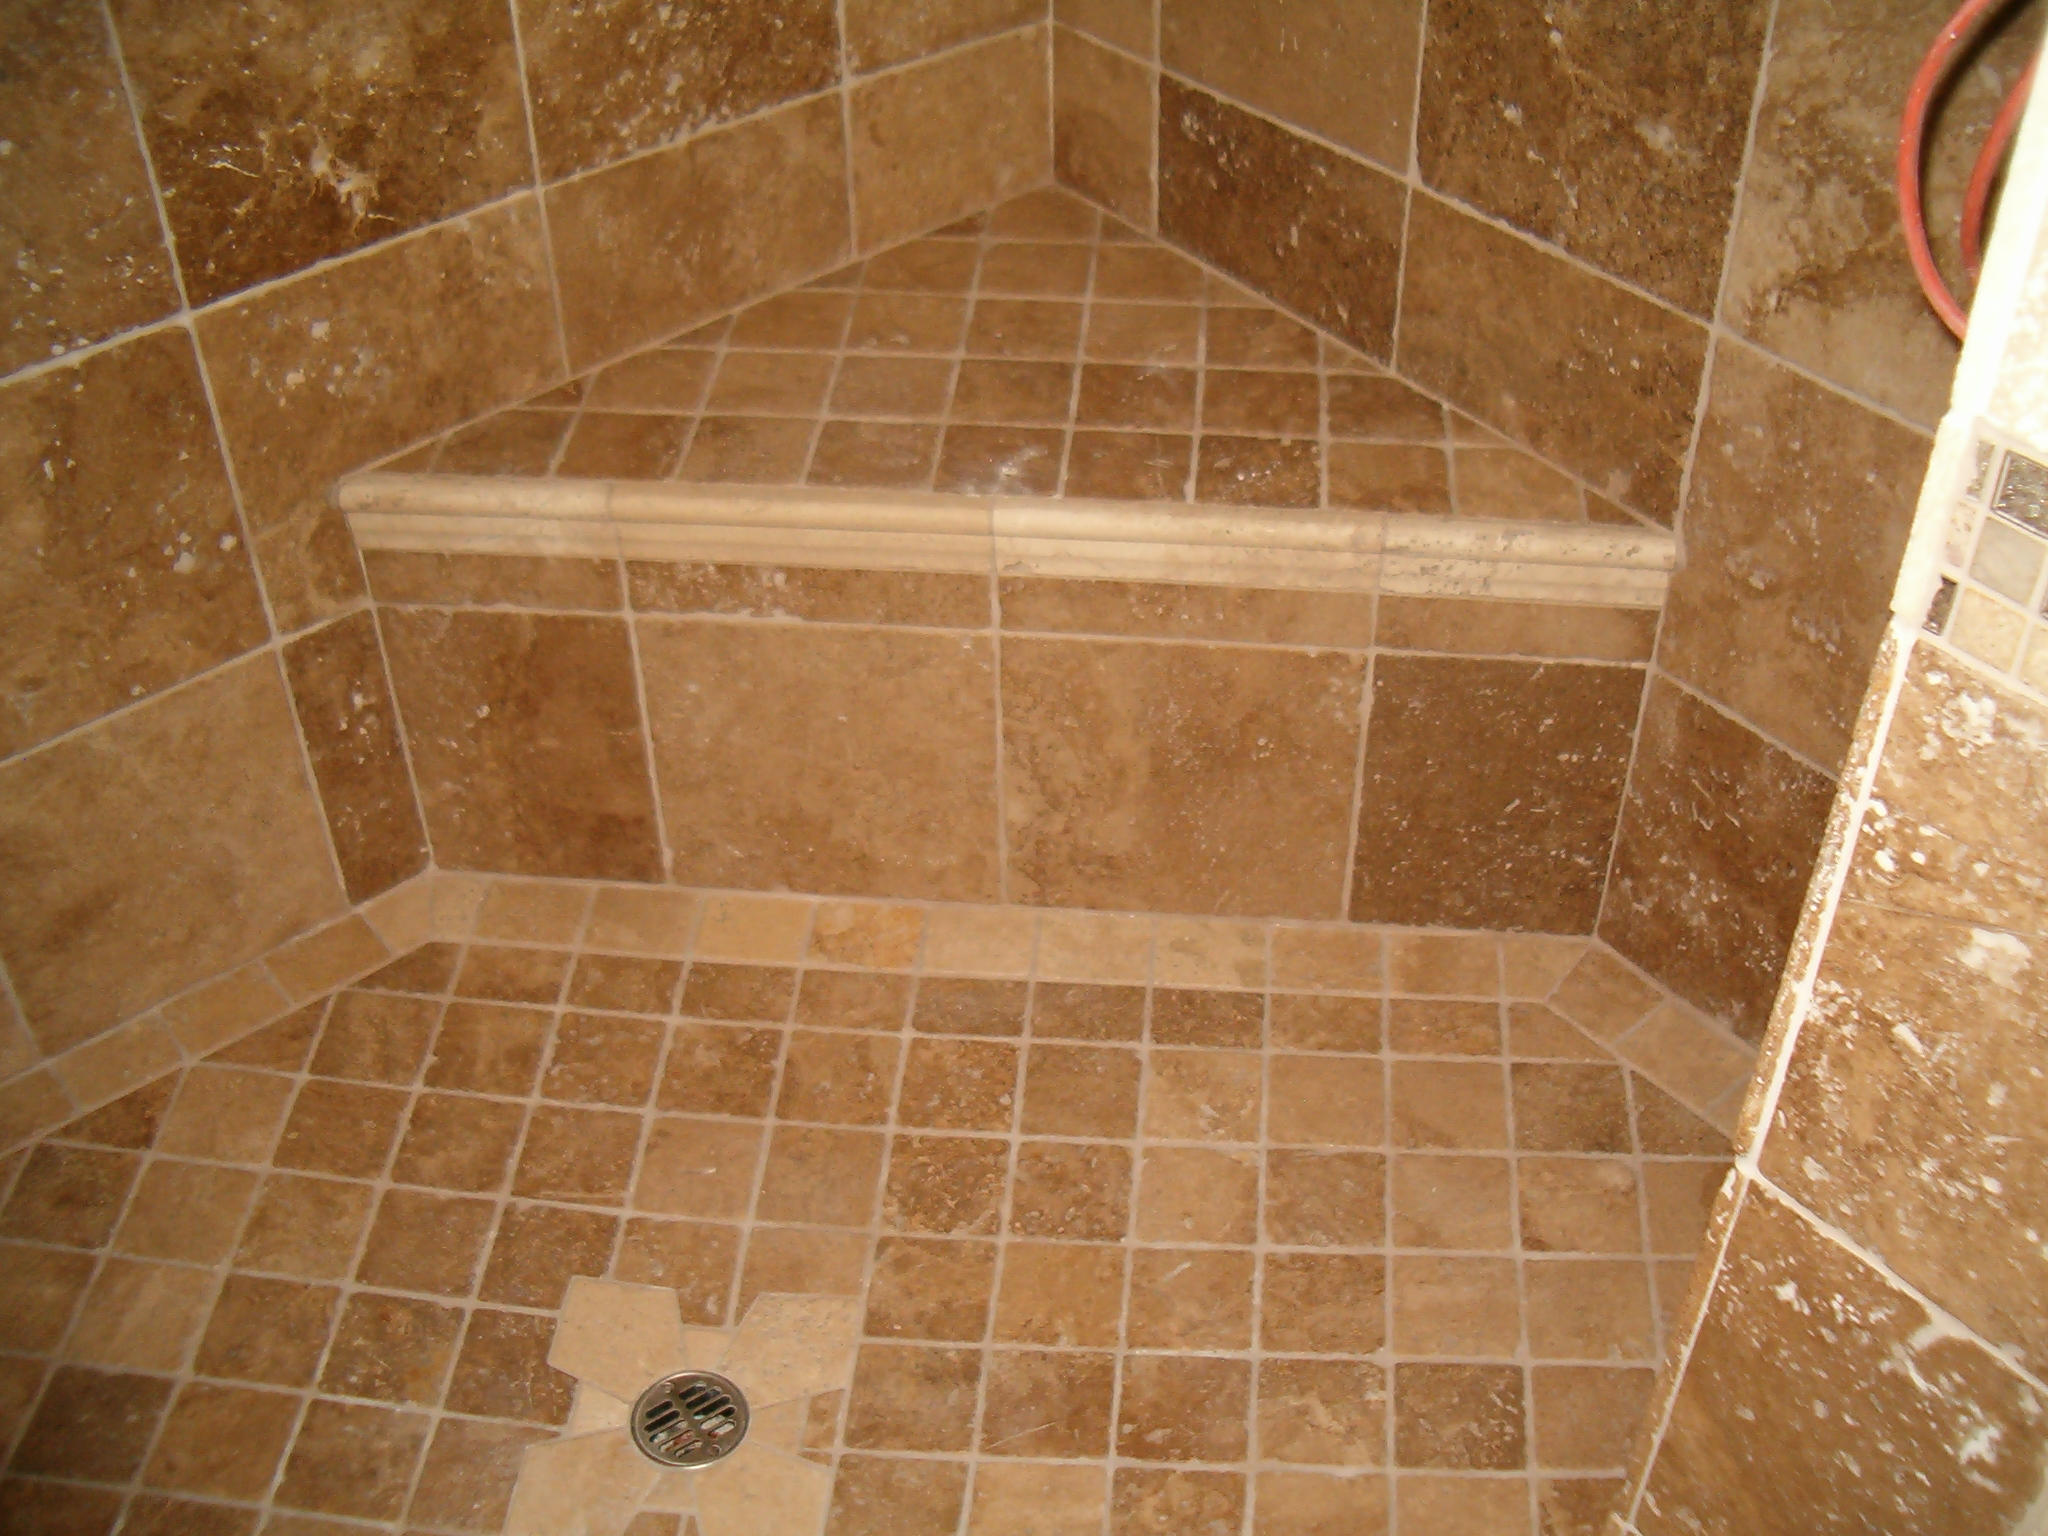 Shower anatomy Install tile shower